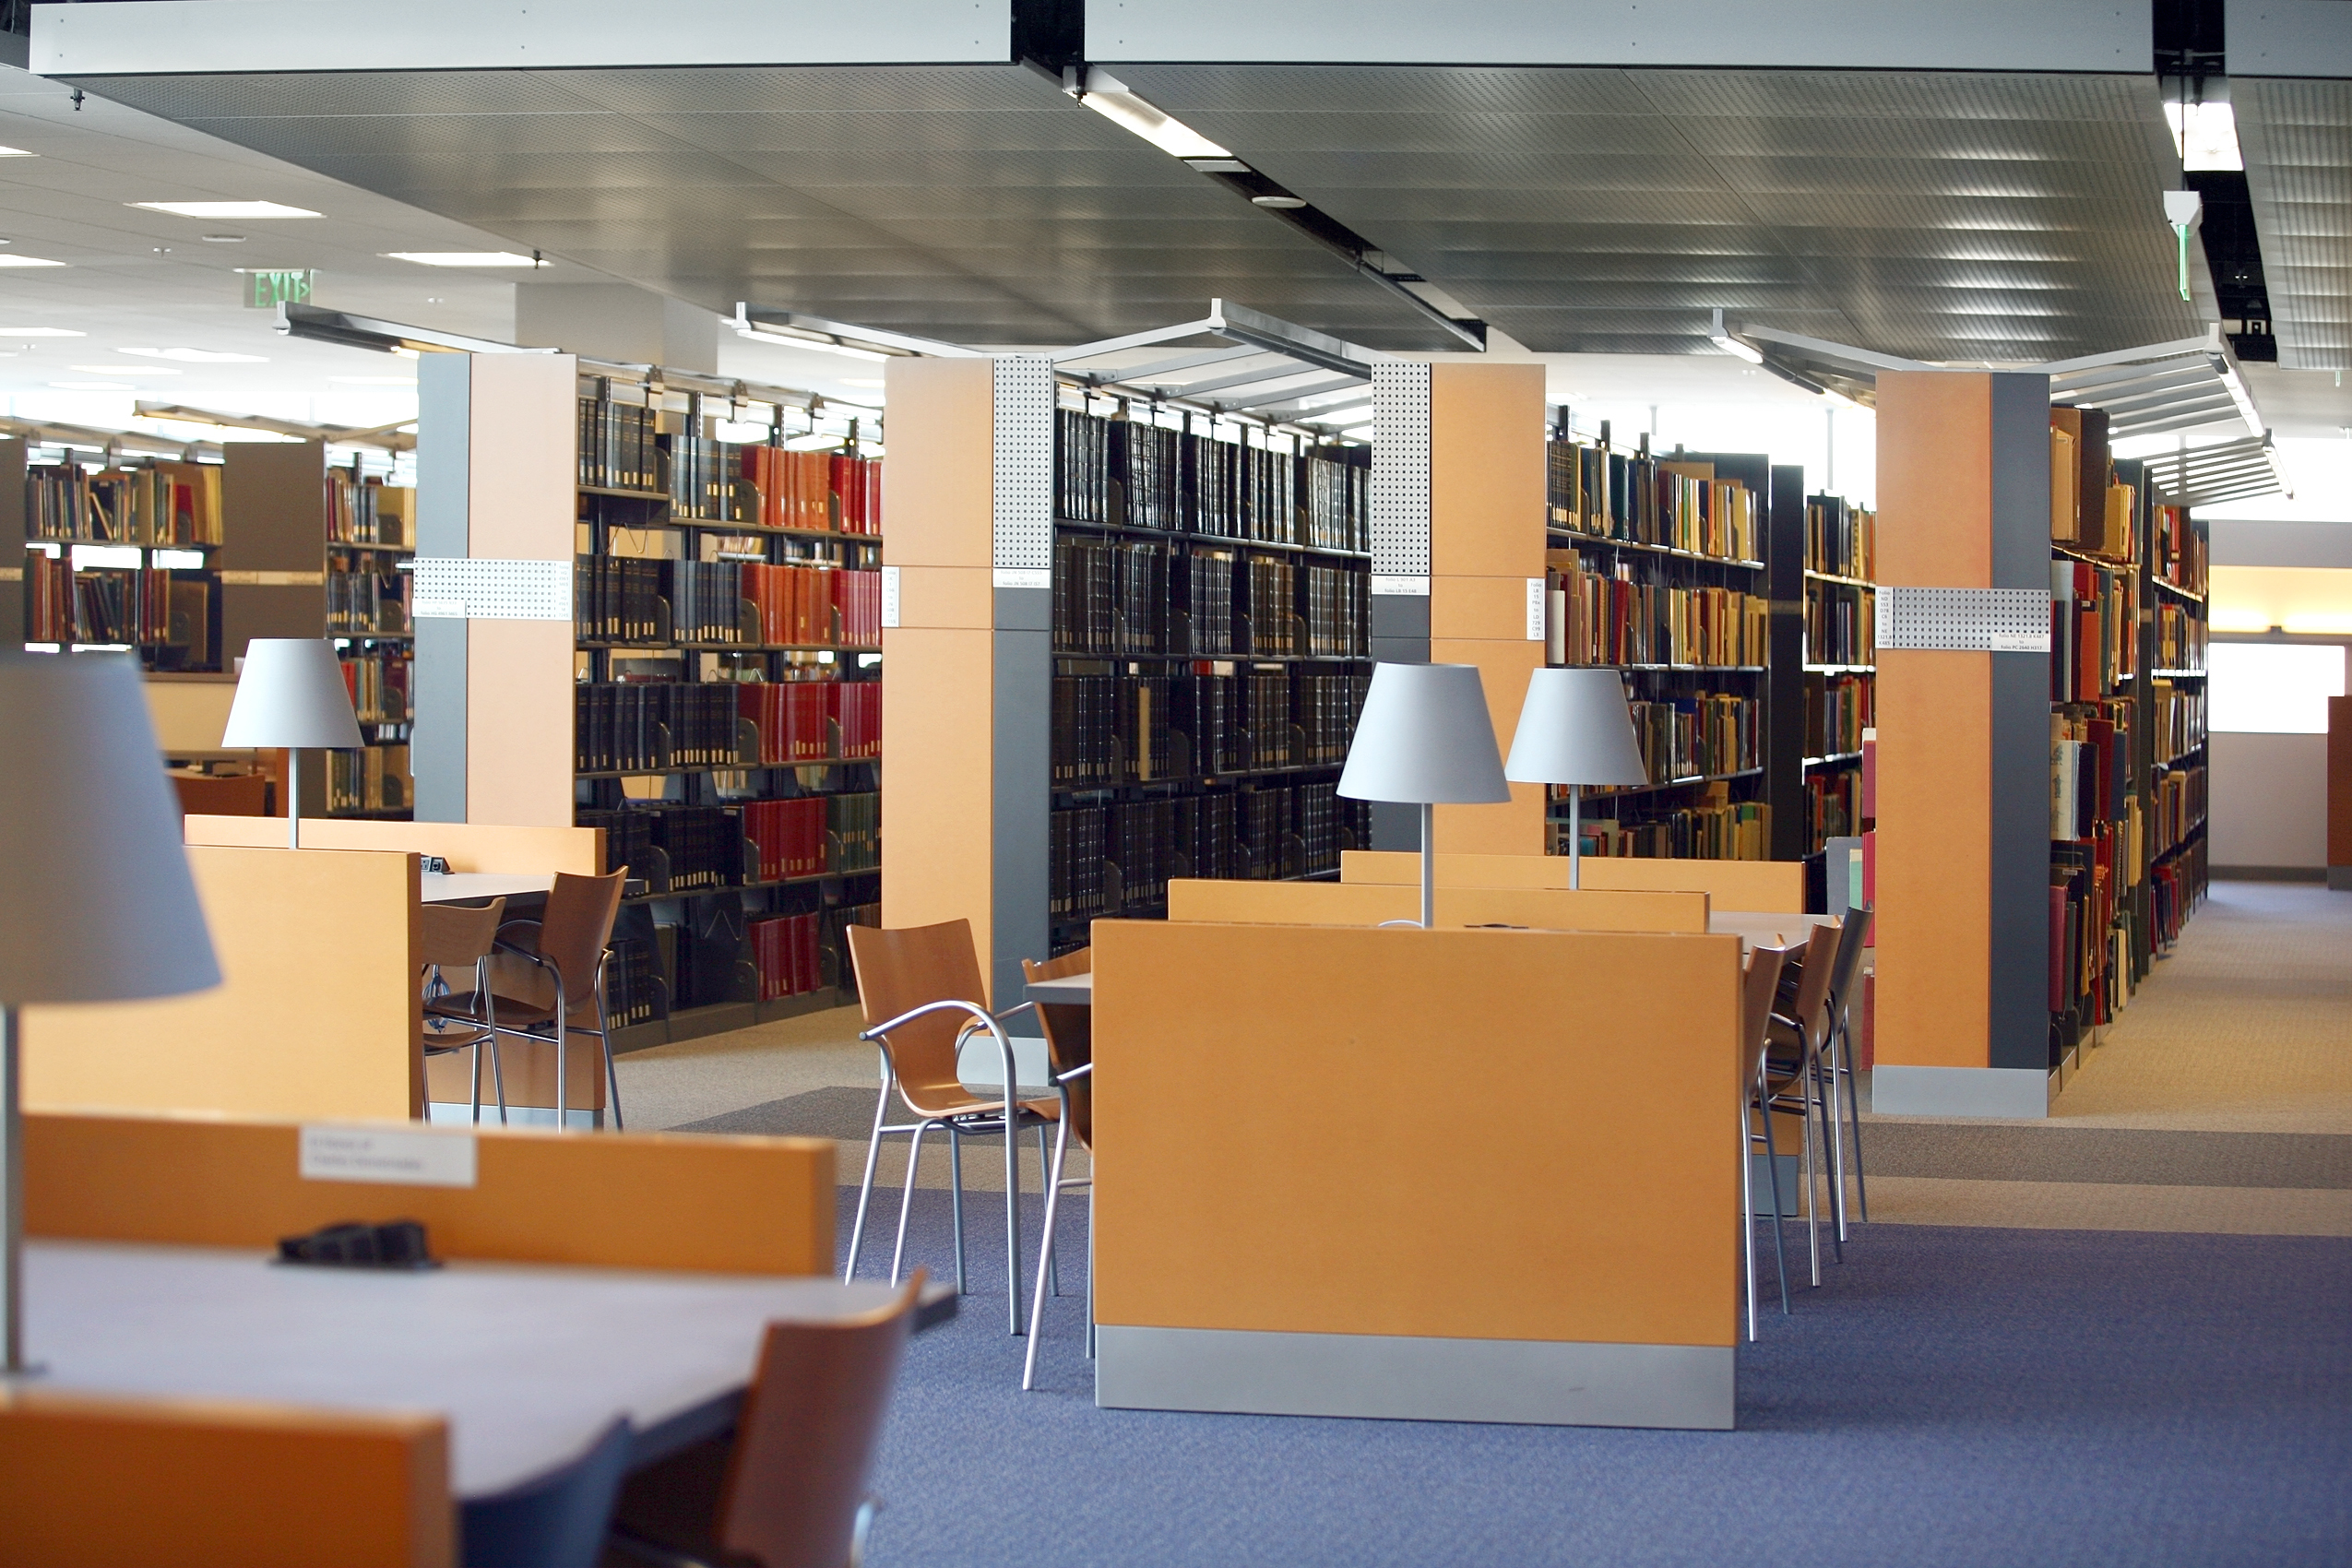 tables and chairs in an empty library